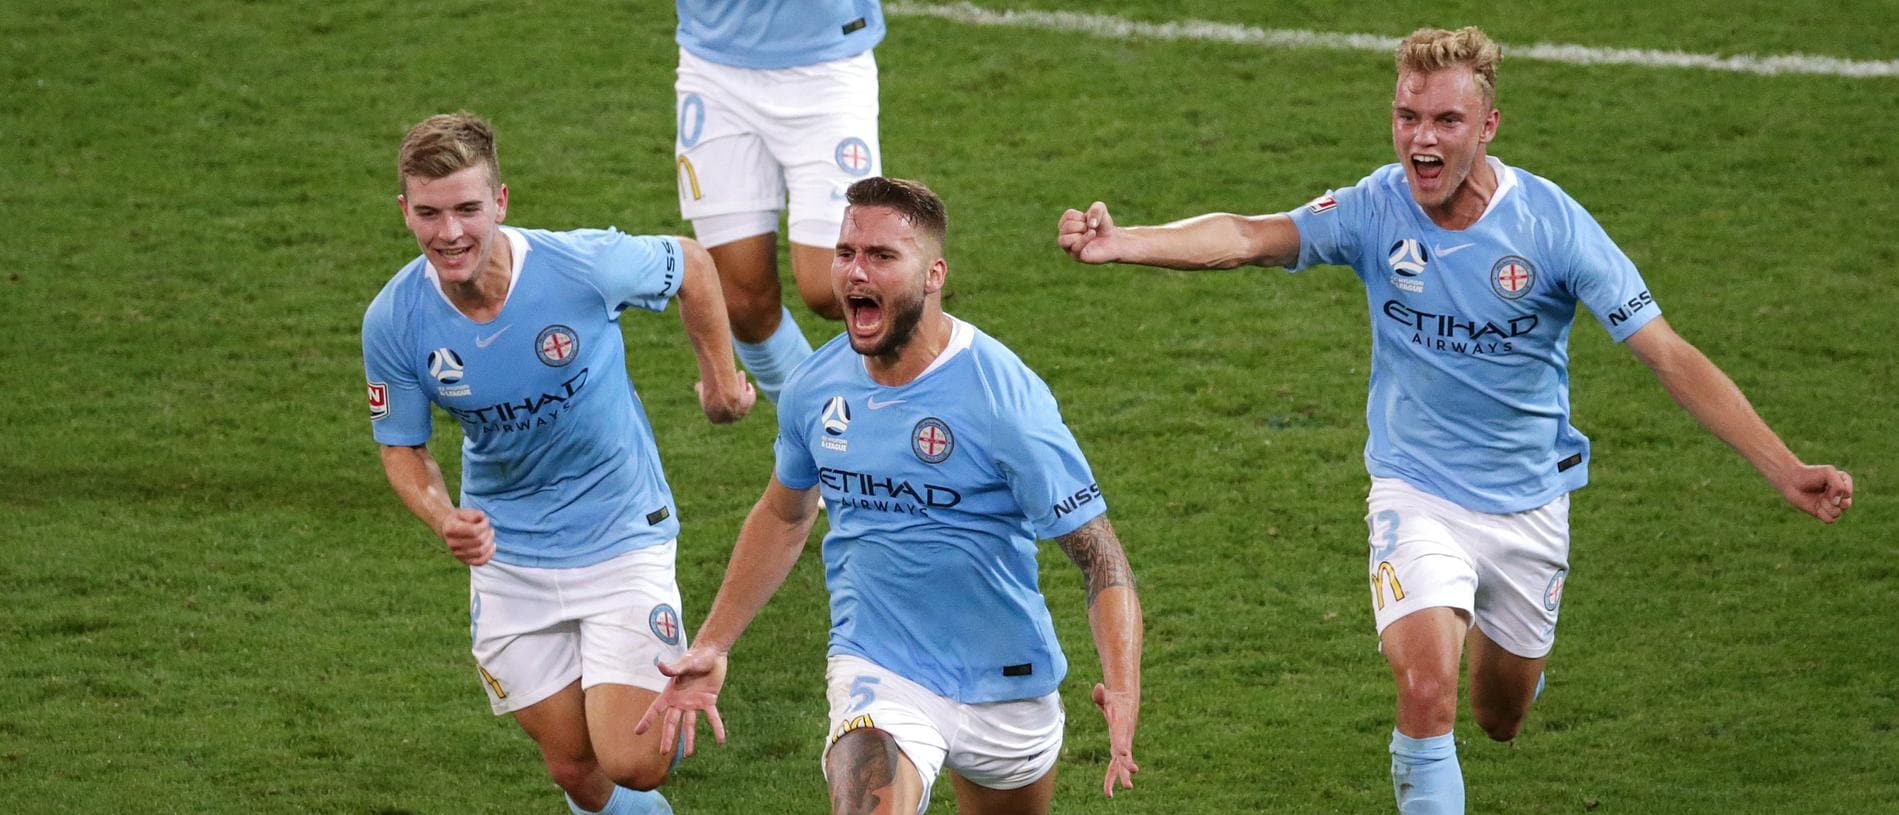 Bart Schenkeveld of the City scores a late winner during the Round 15 A-League match between the Melbourne City and the Western Sydney Wanderers at AAMI Park in Melbourne, Tuesday, January 22, 2019. (AAP Image/George Salpigtidis) NO ARCHIVING, EDITORIAL USE ONLY